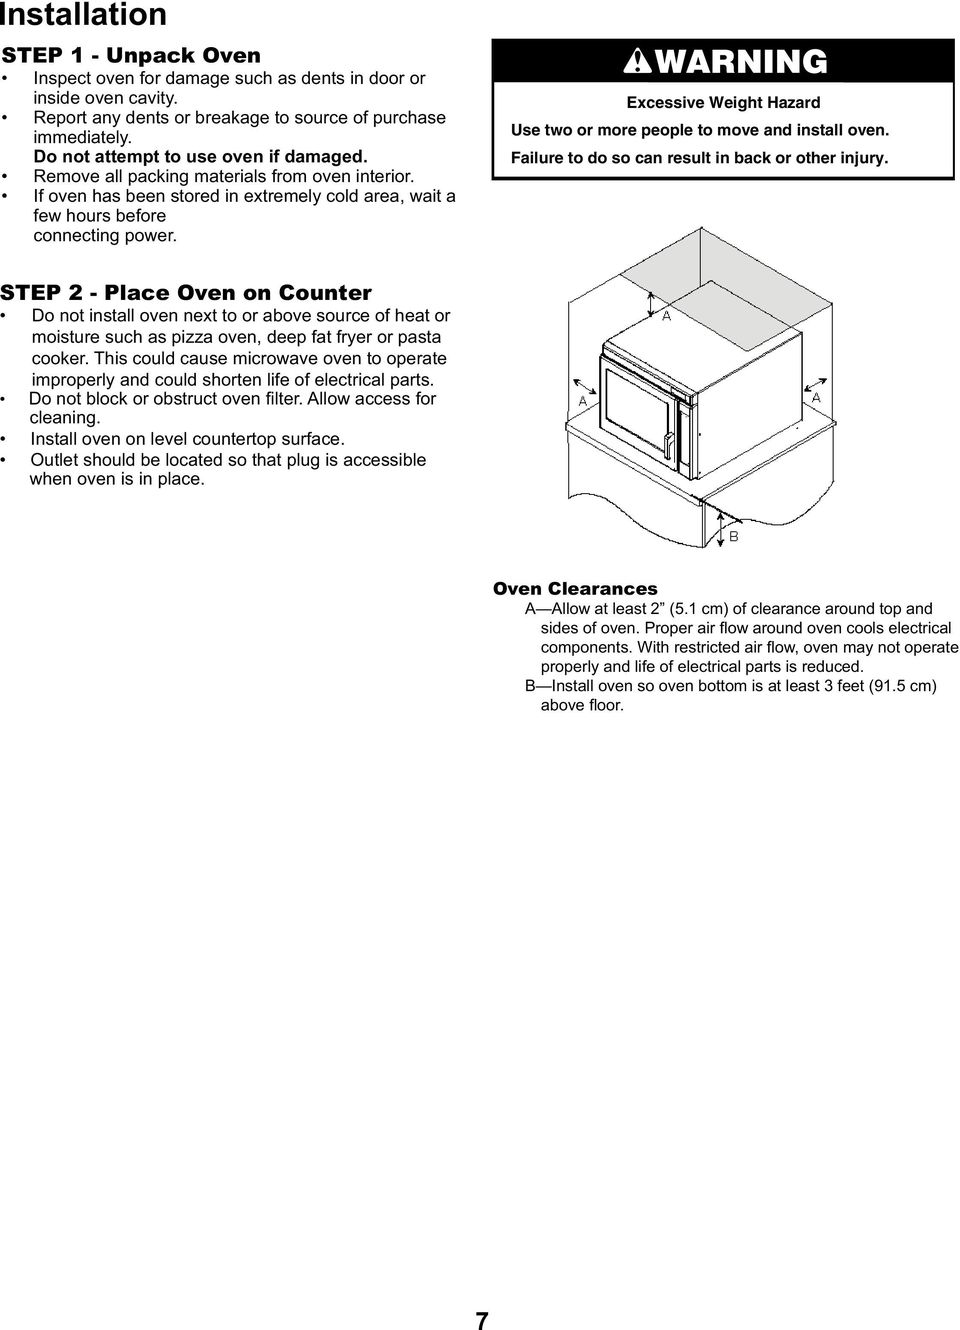 Service / Training Manual Commercial Microwave Oven - PDF